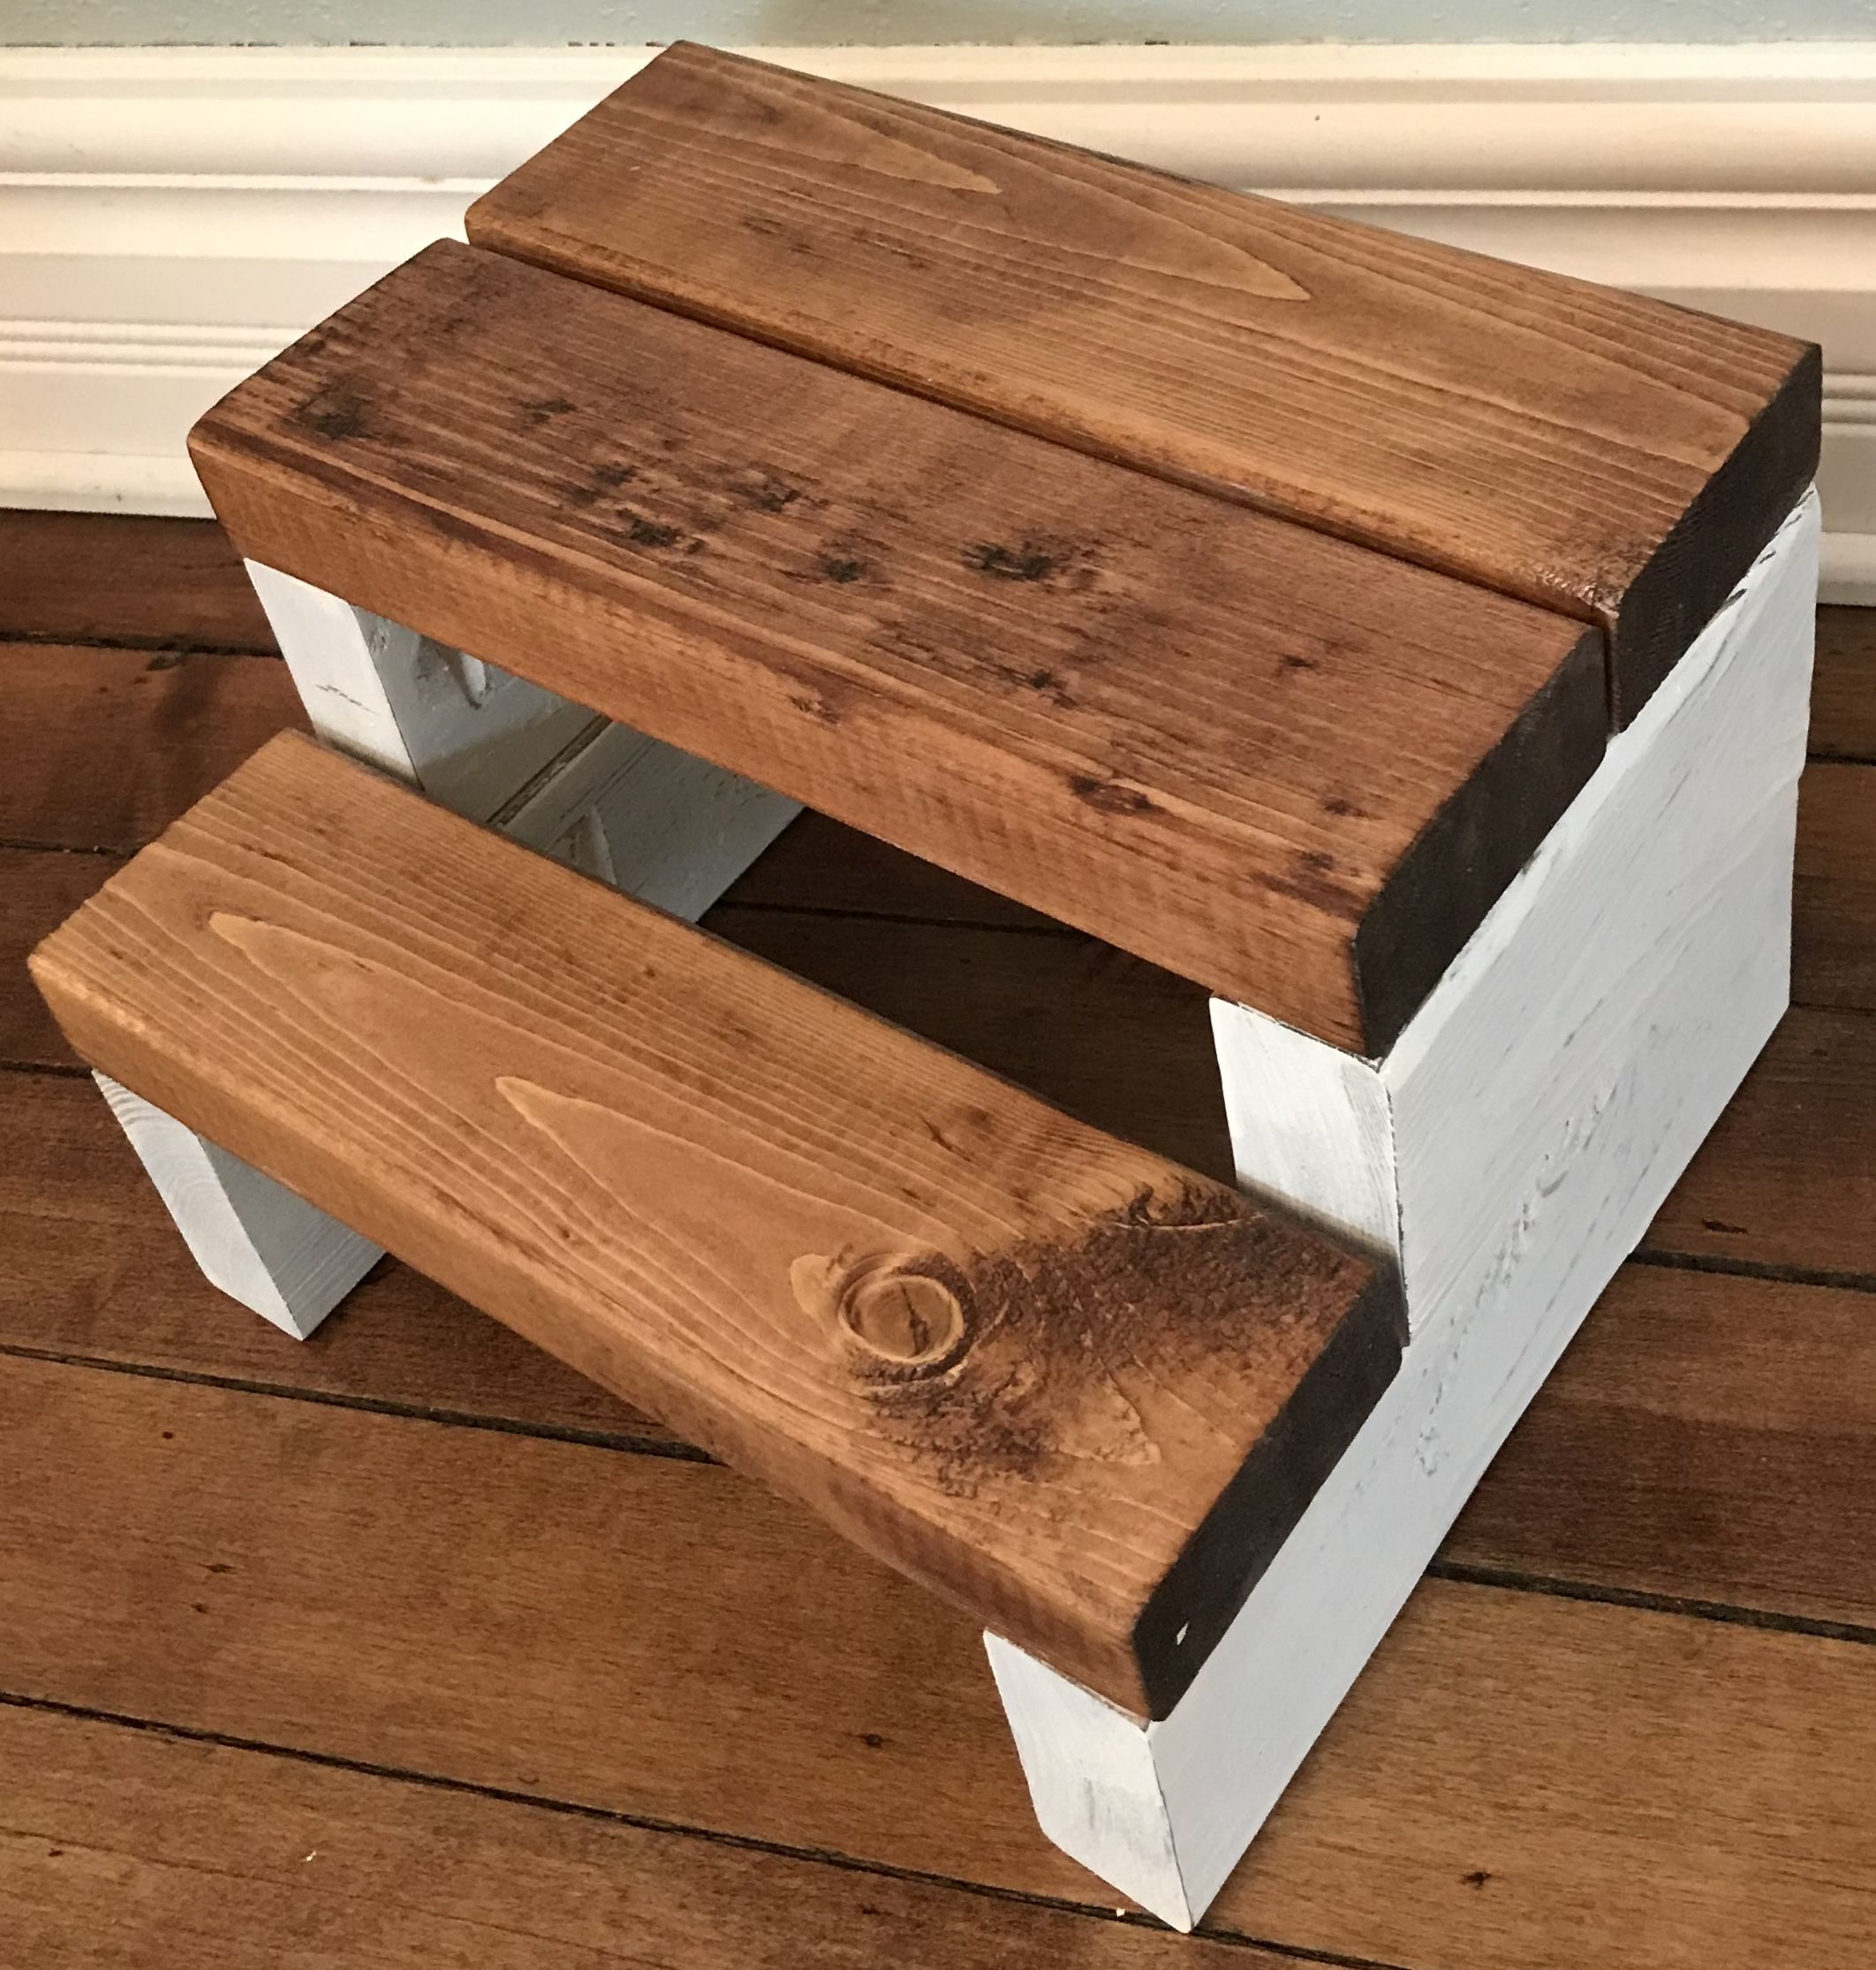 Marvelous Rustic Segmented Kids Step Stool Toddler Step Stool Wooden Creativecarmelina Interior Chair Design Creativecarmelinacom